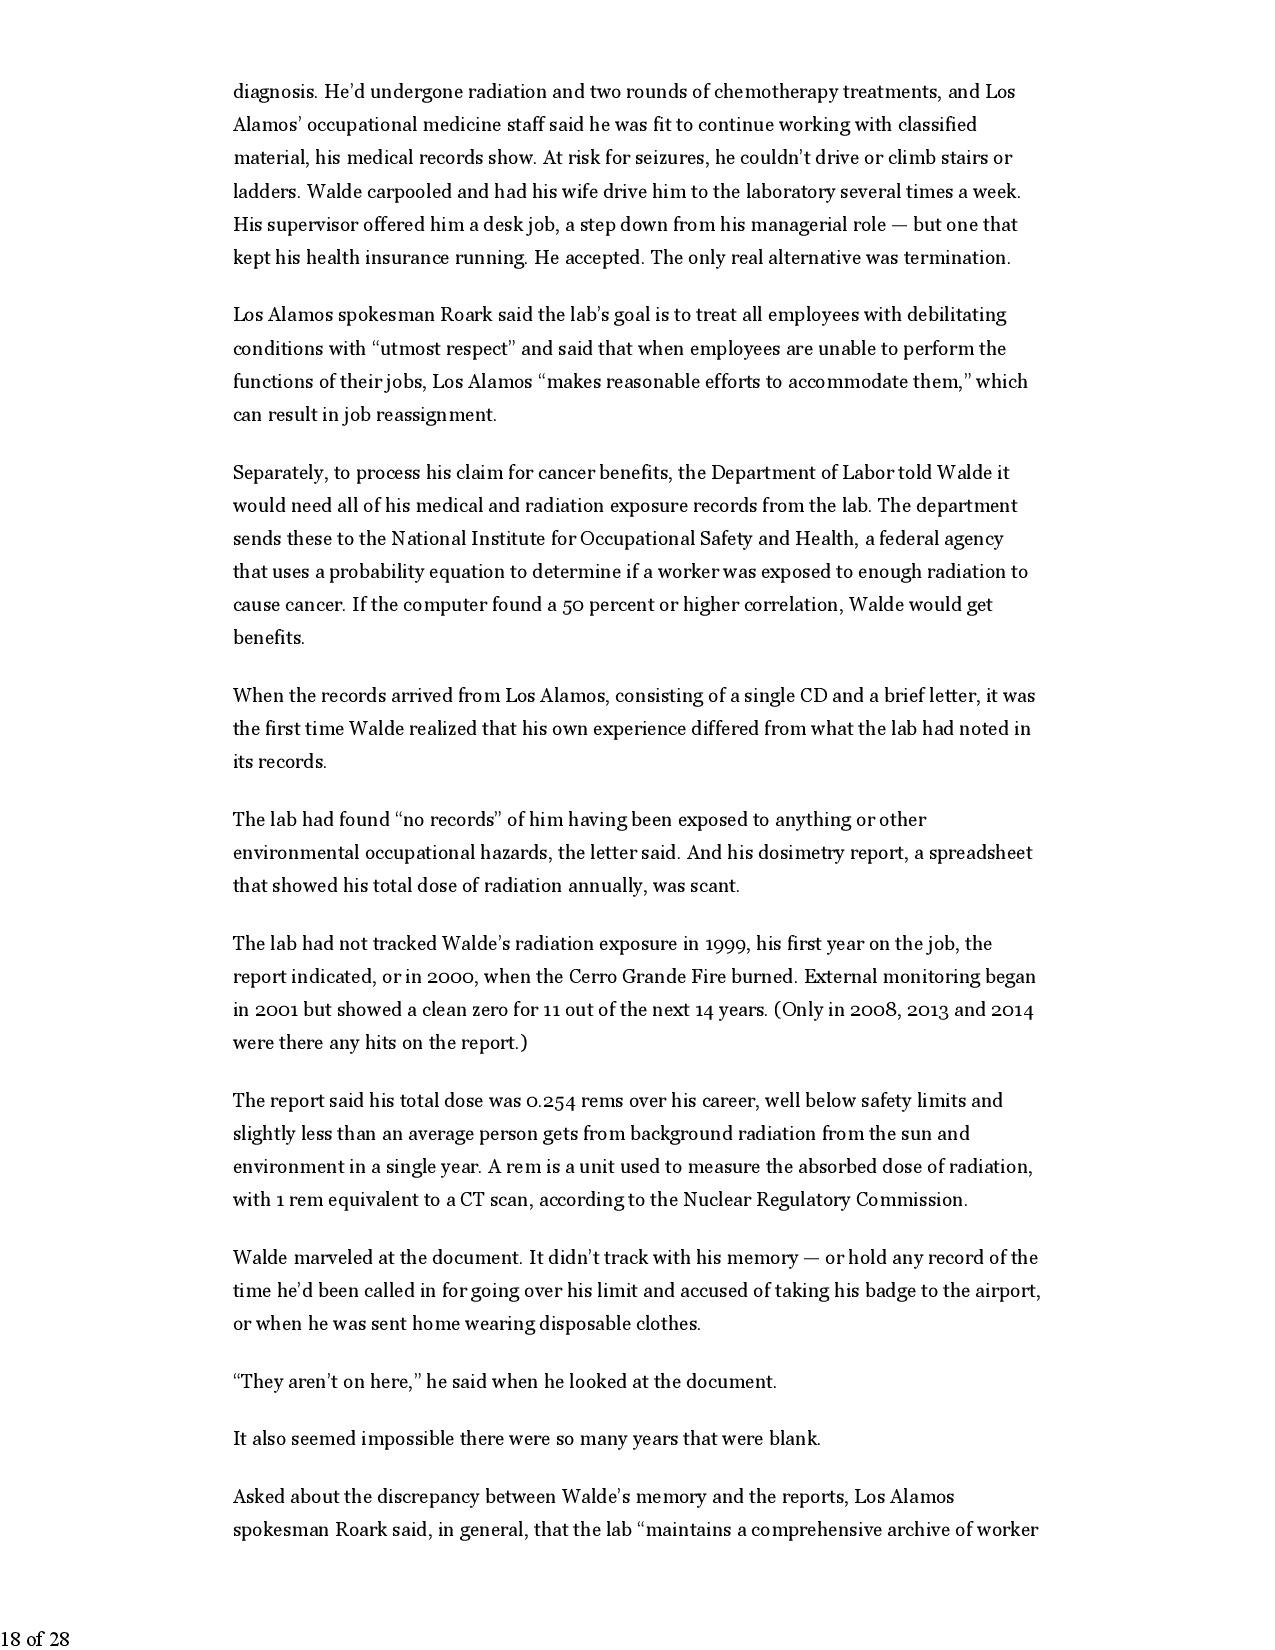 The life and death of Chad Walde - Local News-page-018